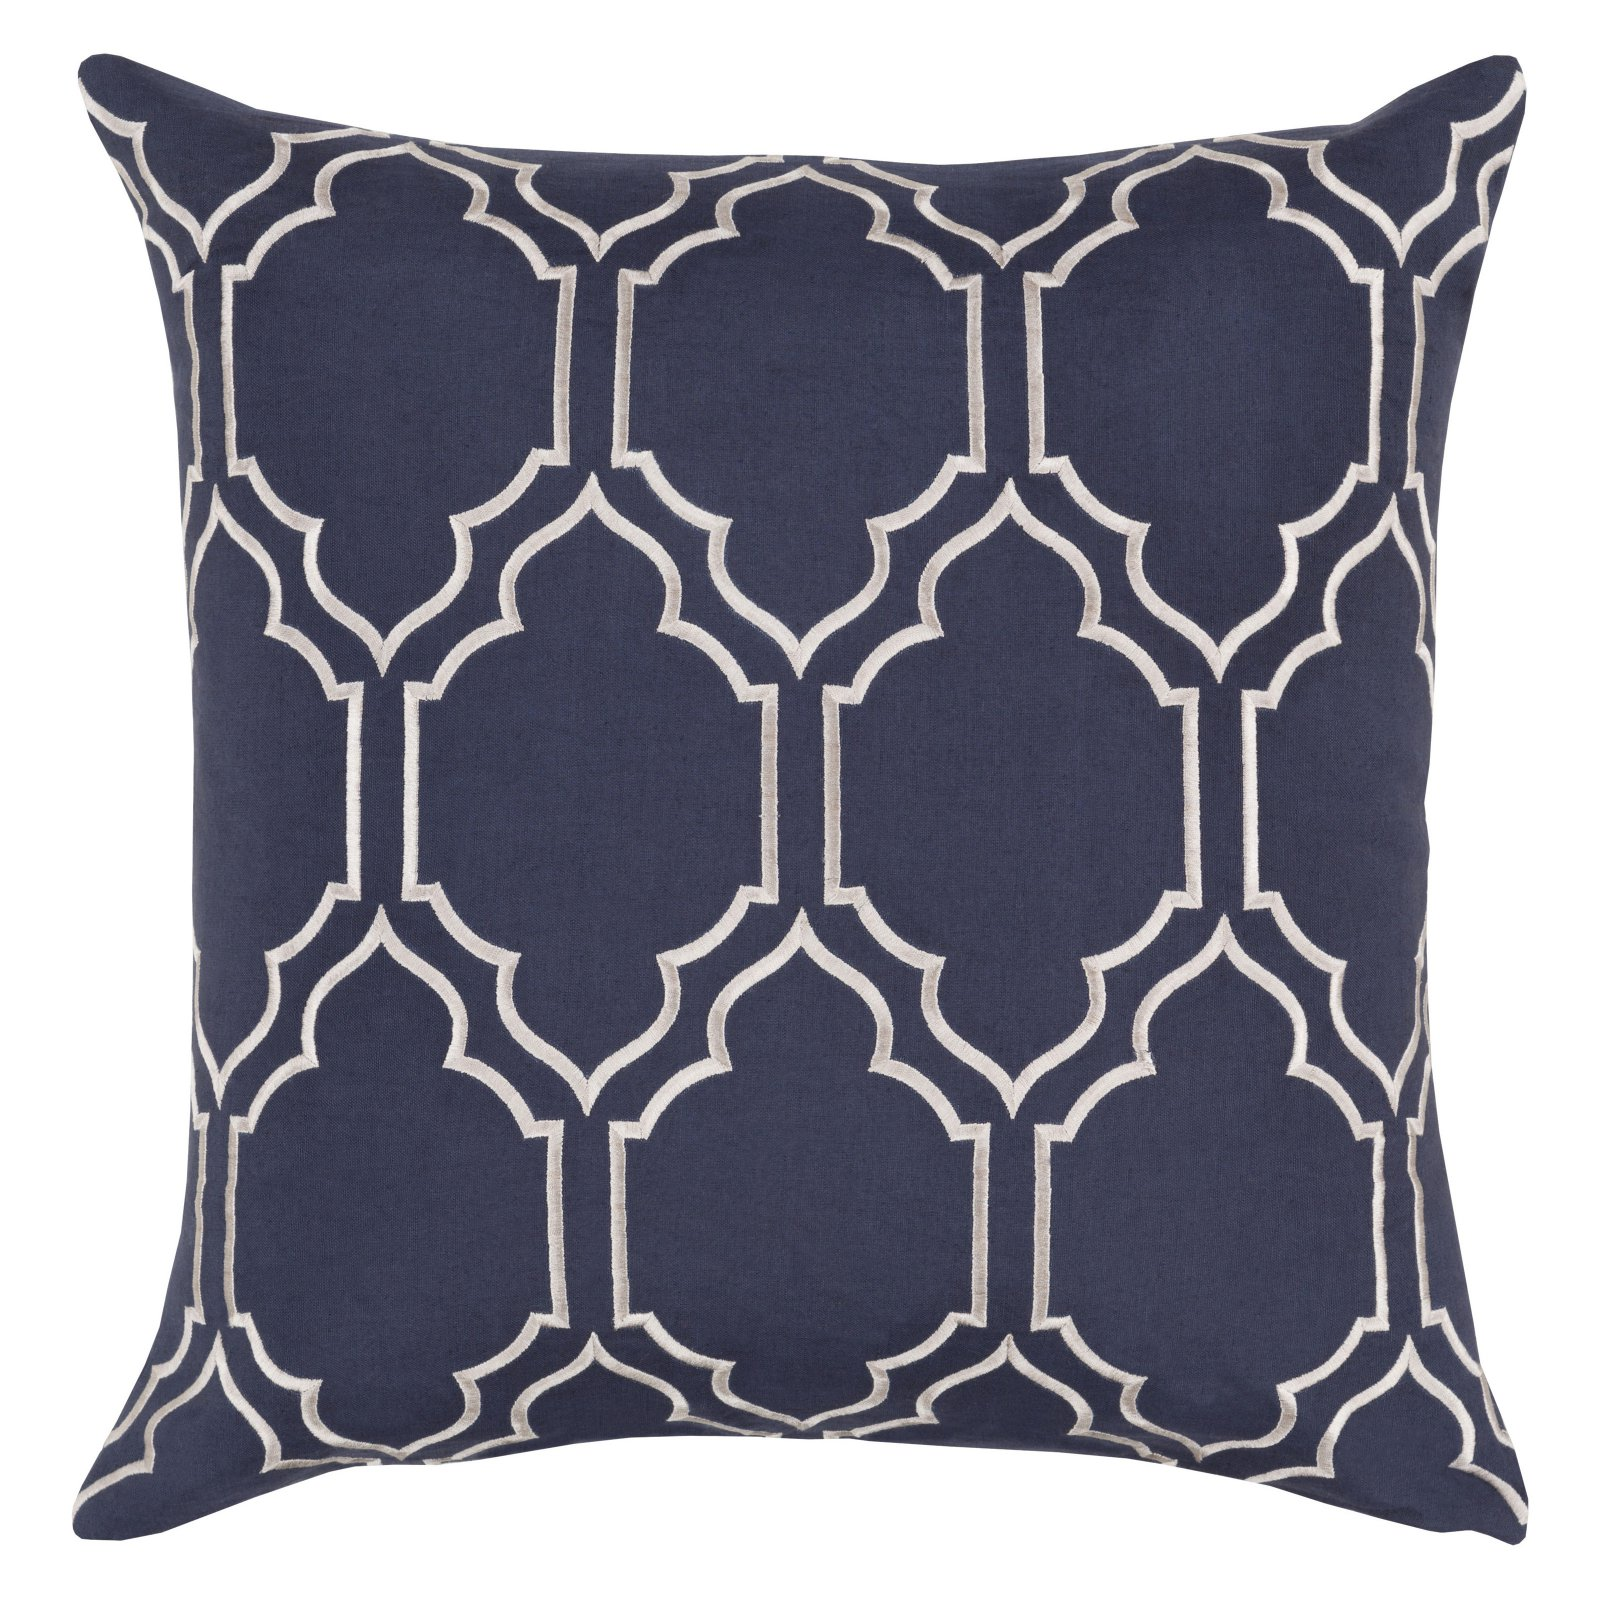 Surya Skyline VI Decorative Throw Pillow